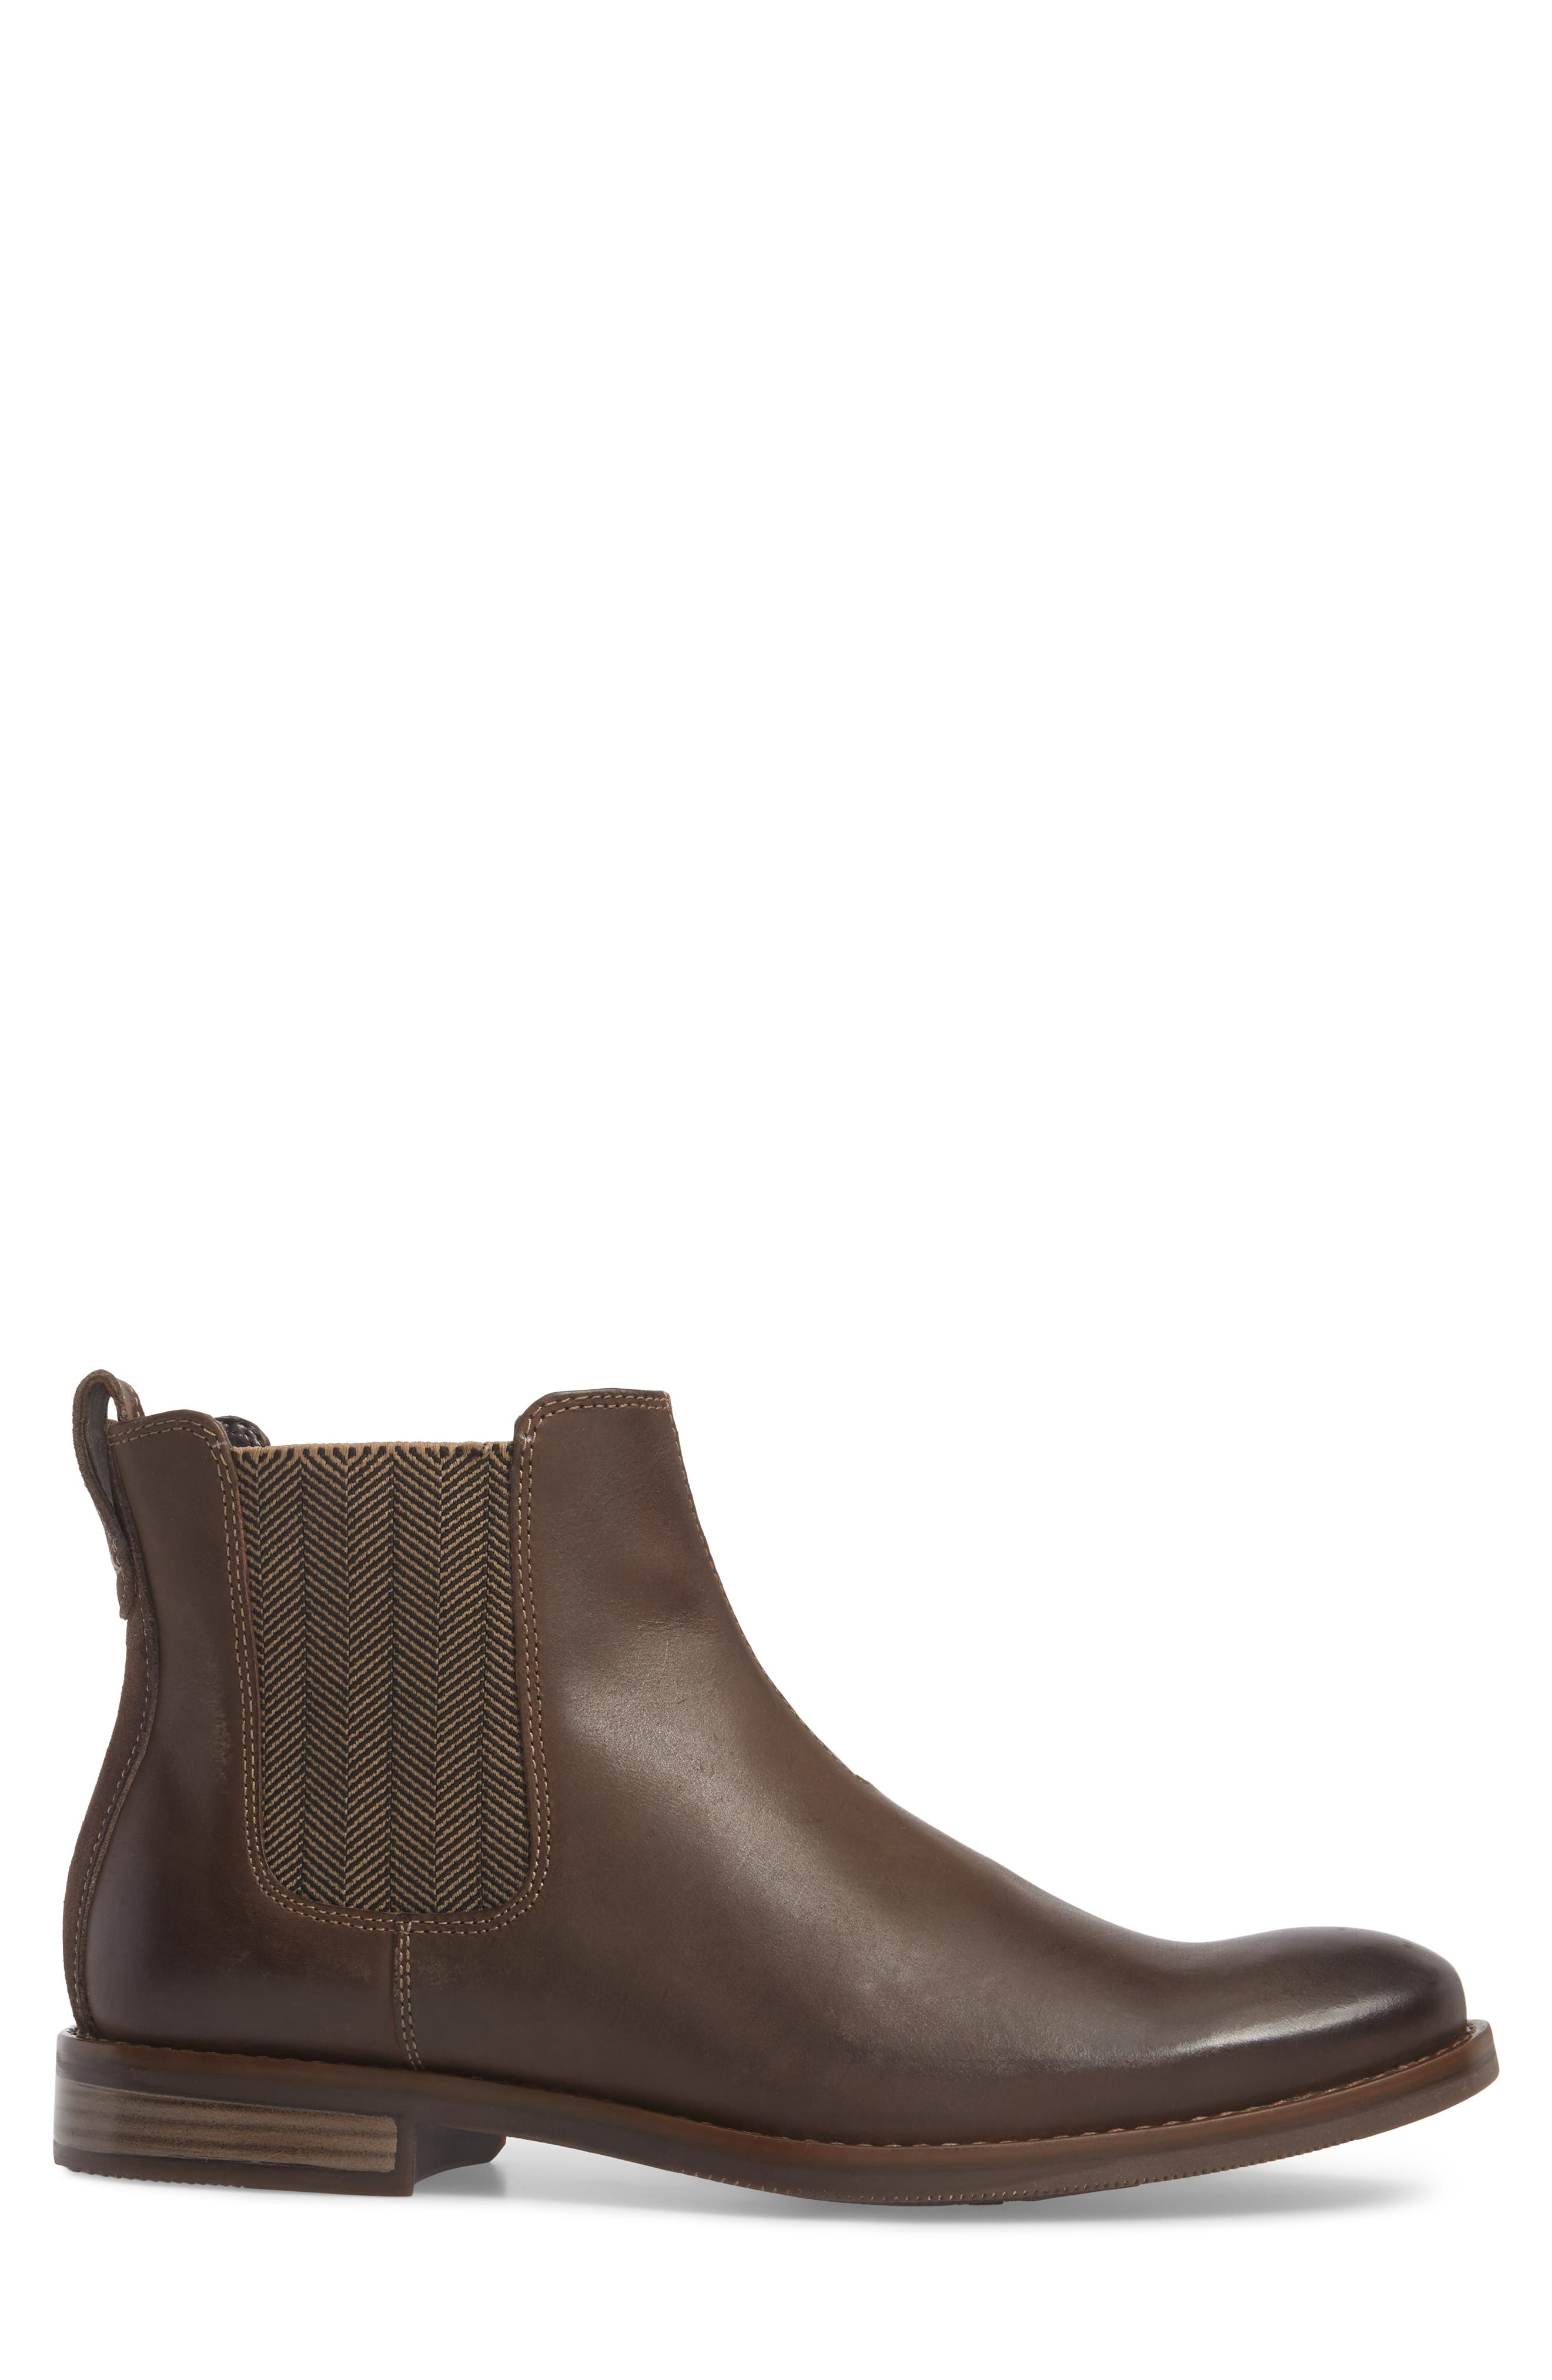 Wynstin Chelsea Boot,                             Alternate thumbnail 3, color,                             DARK BITTER CHOCOLATE LEATHER